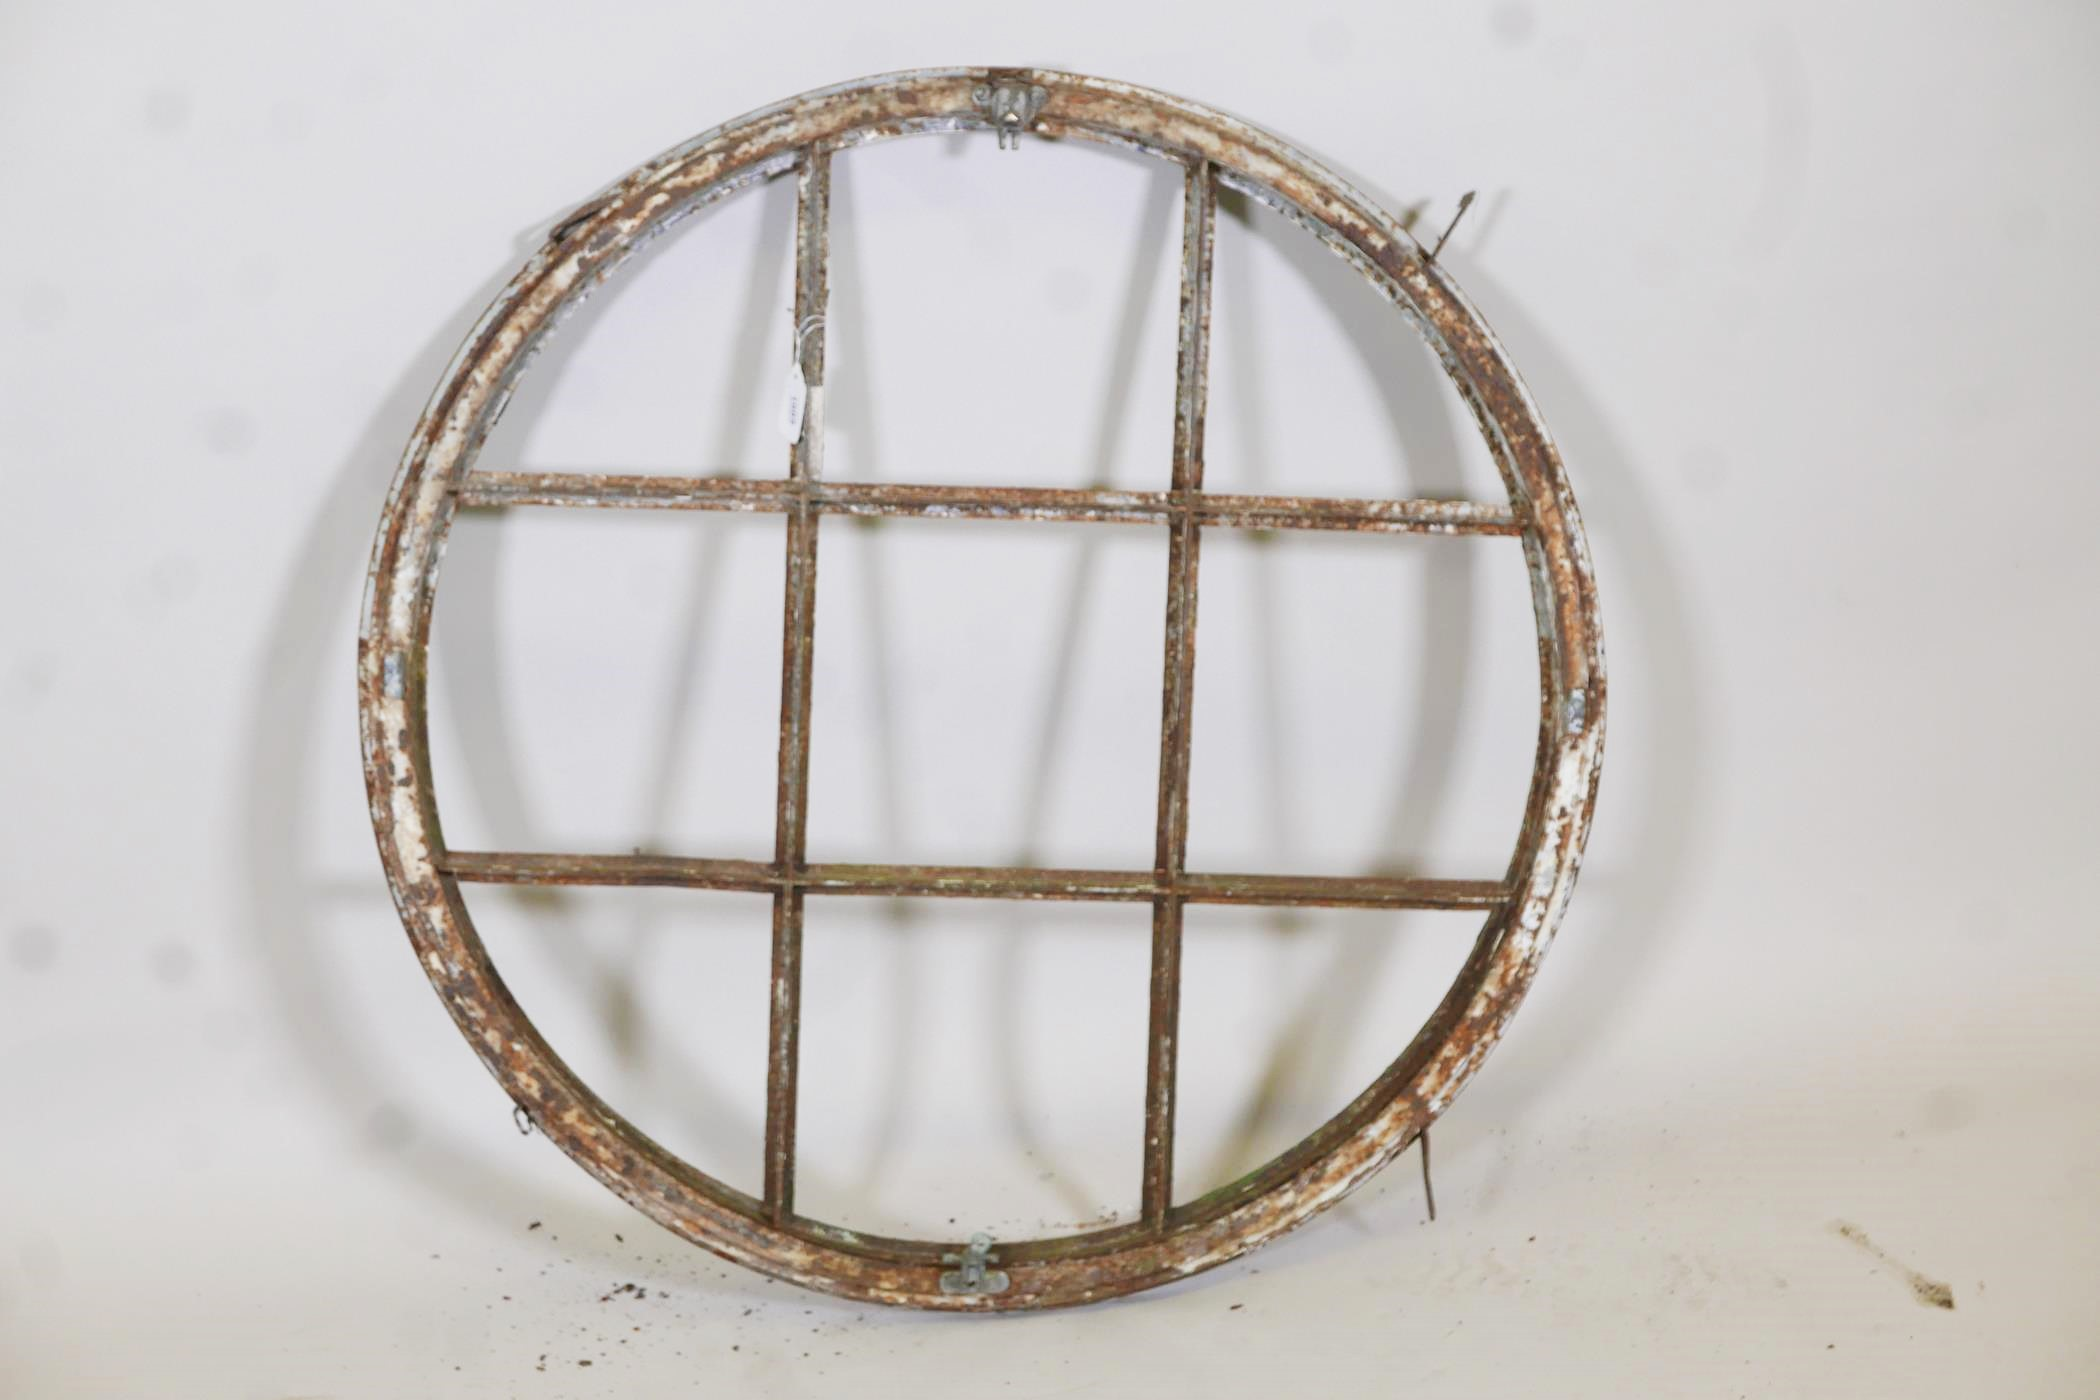 """Architectural salvage, a painted metal window frame, 36"""" diameter - Image 3 of 3"""